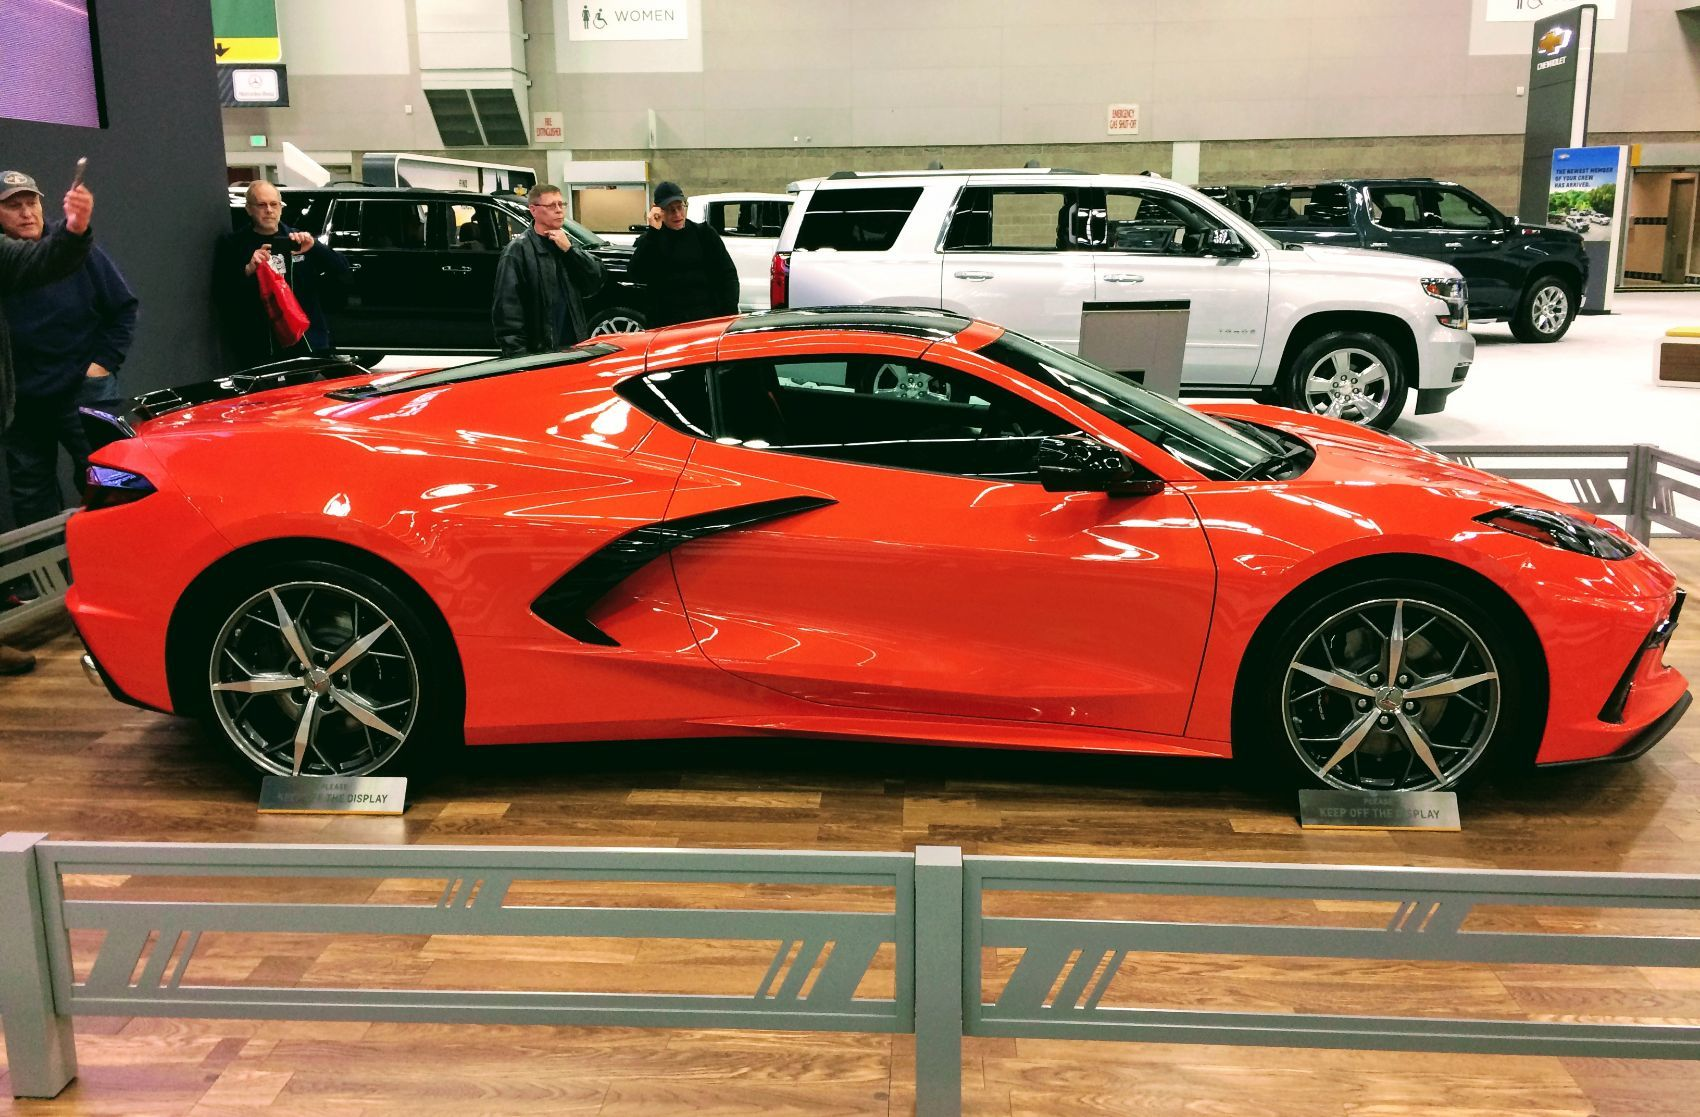 The Northwest Chevy Dealers Showed Me The 2020 Corvette In Person For The First Time! 15